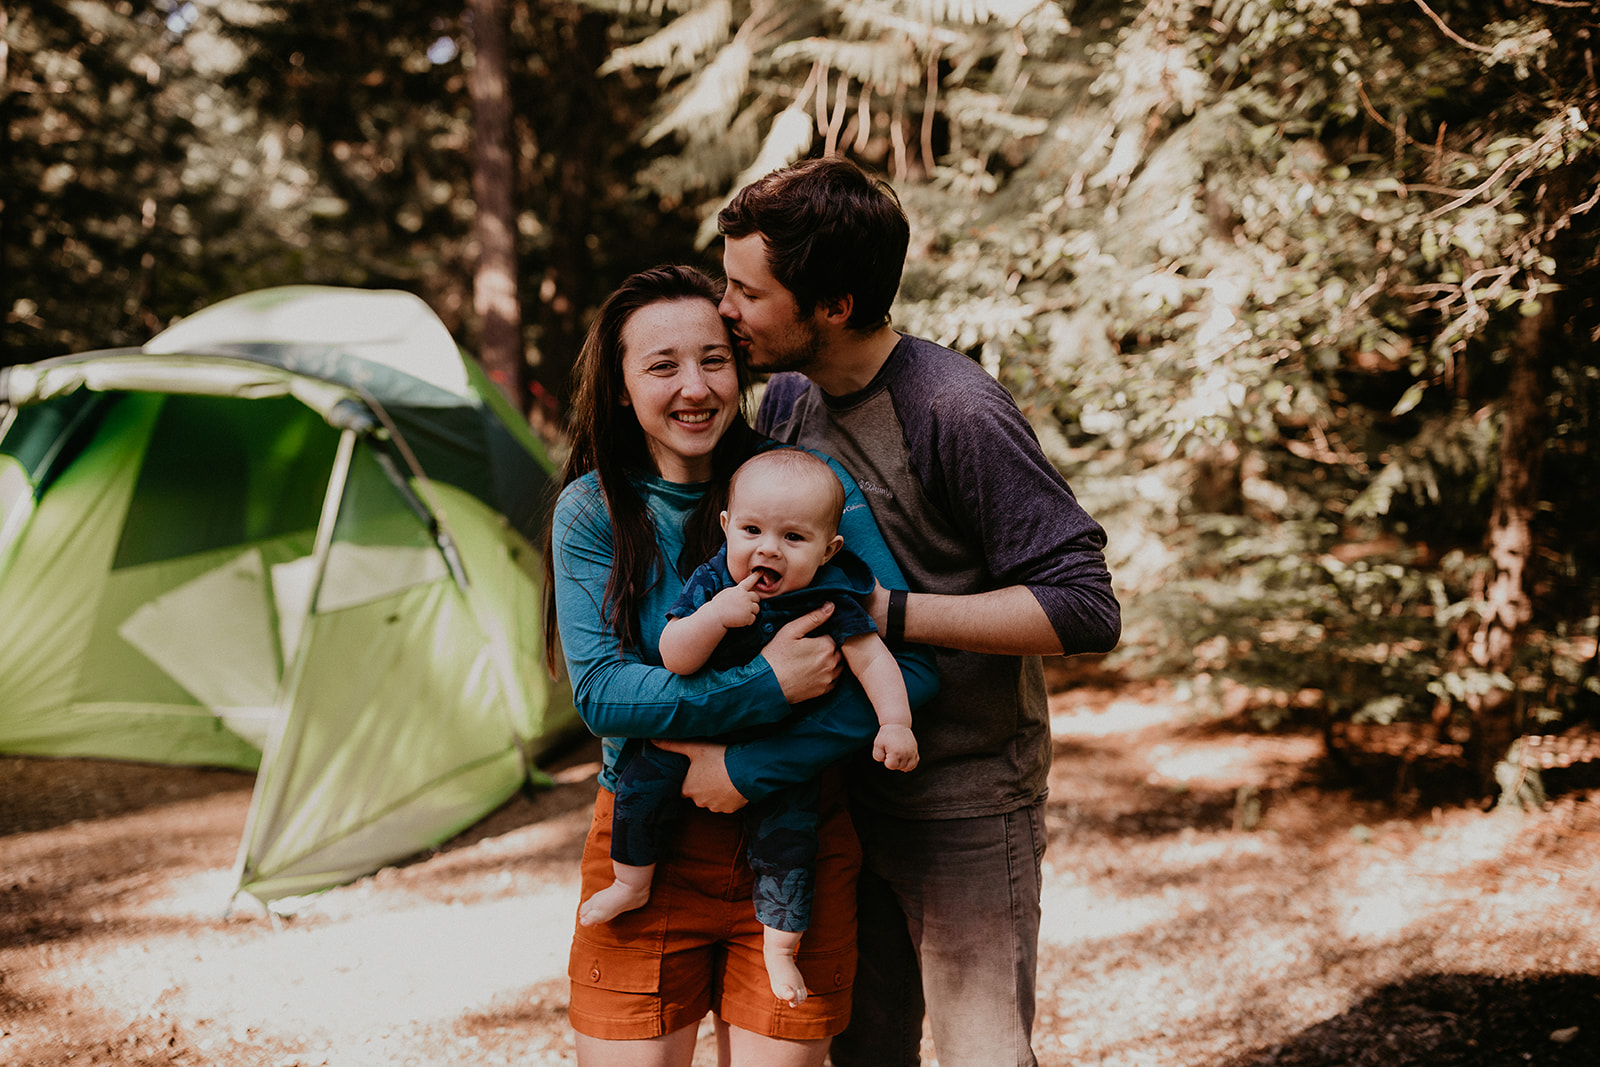 kachess-lake-camping-family-portraits-megan-gallagher-photography_(85_of_335).jpg